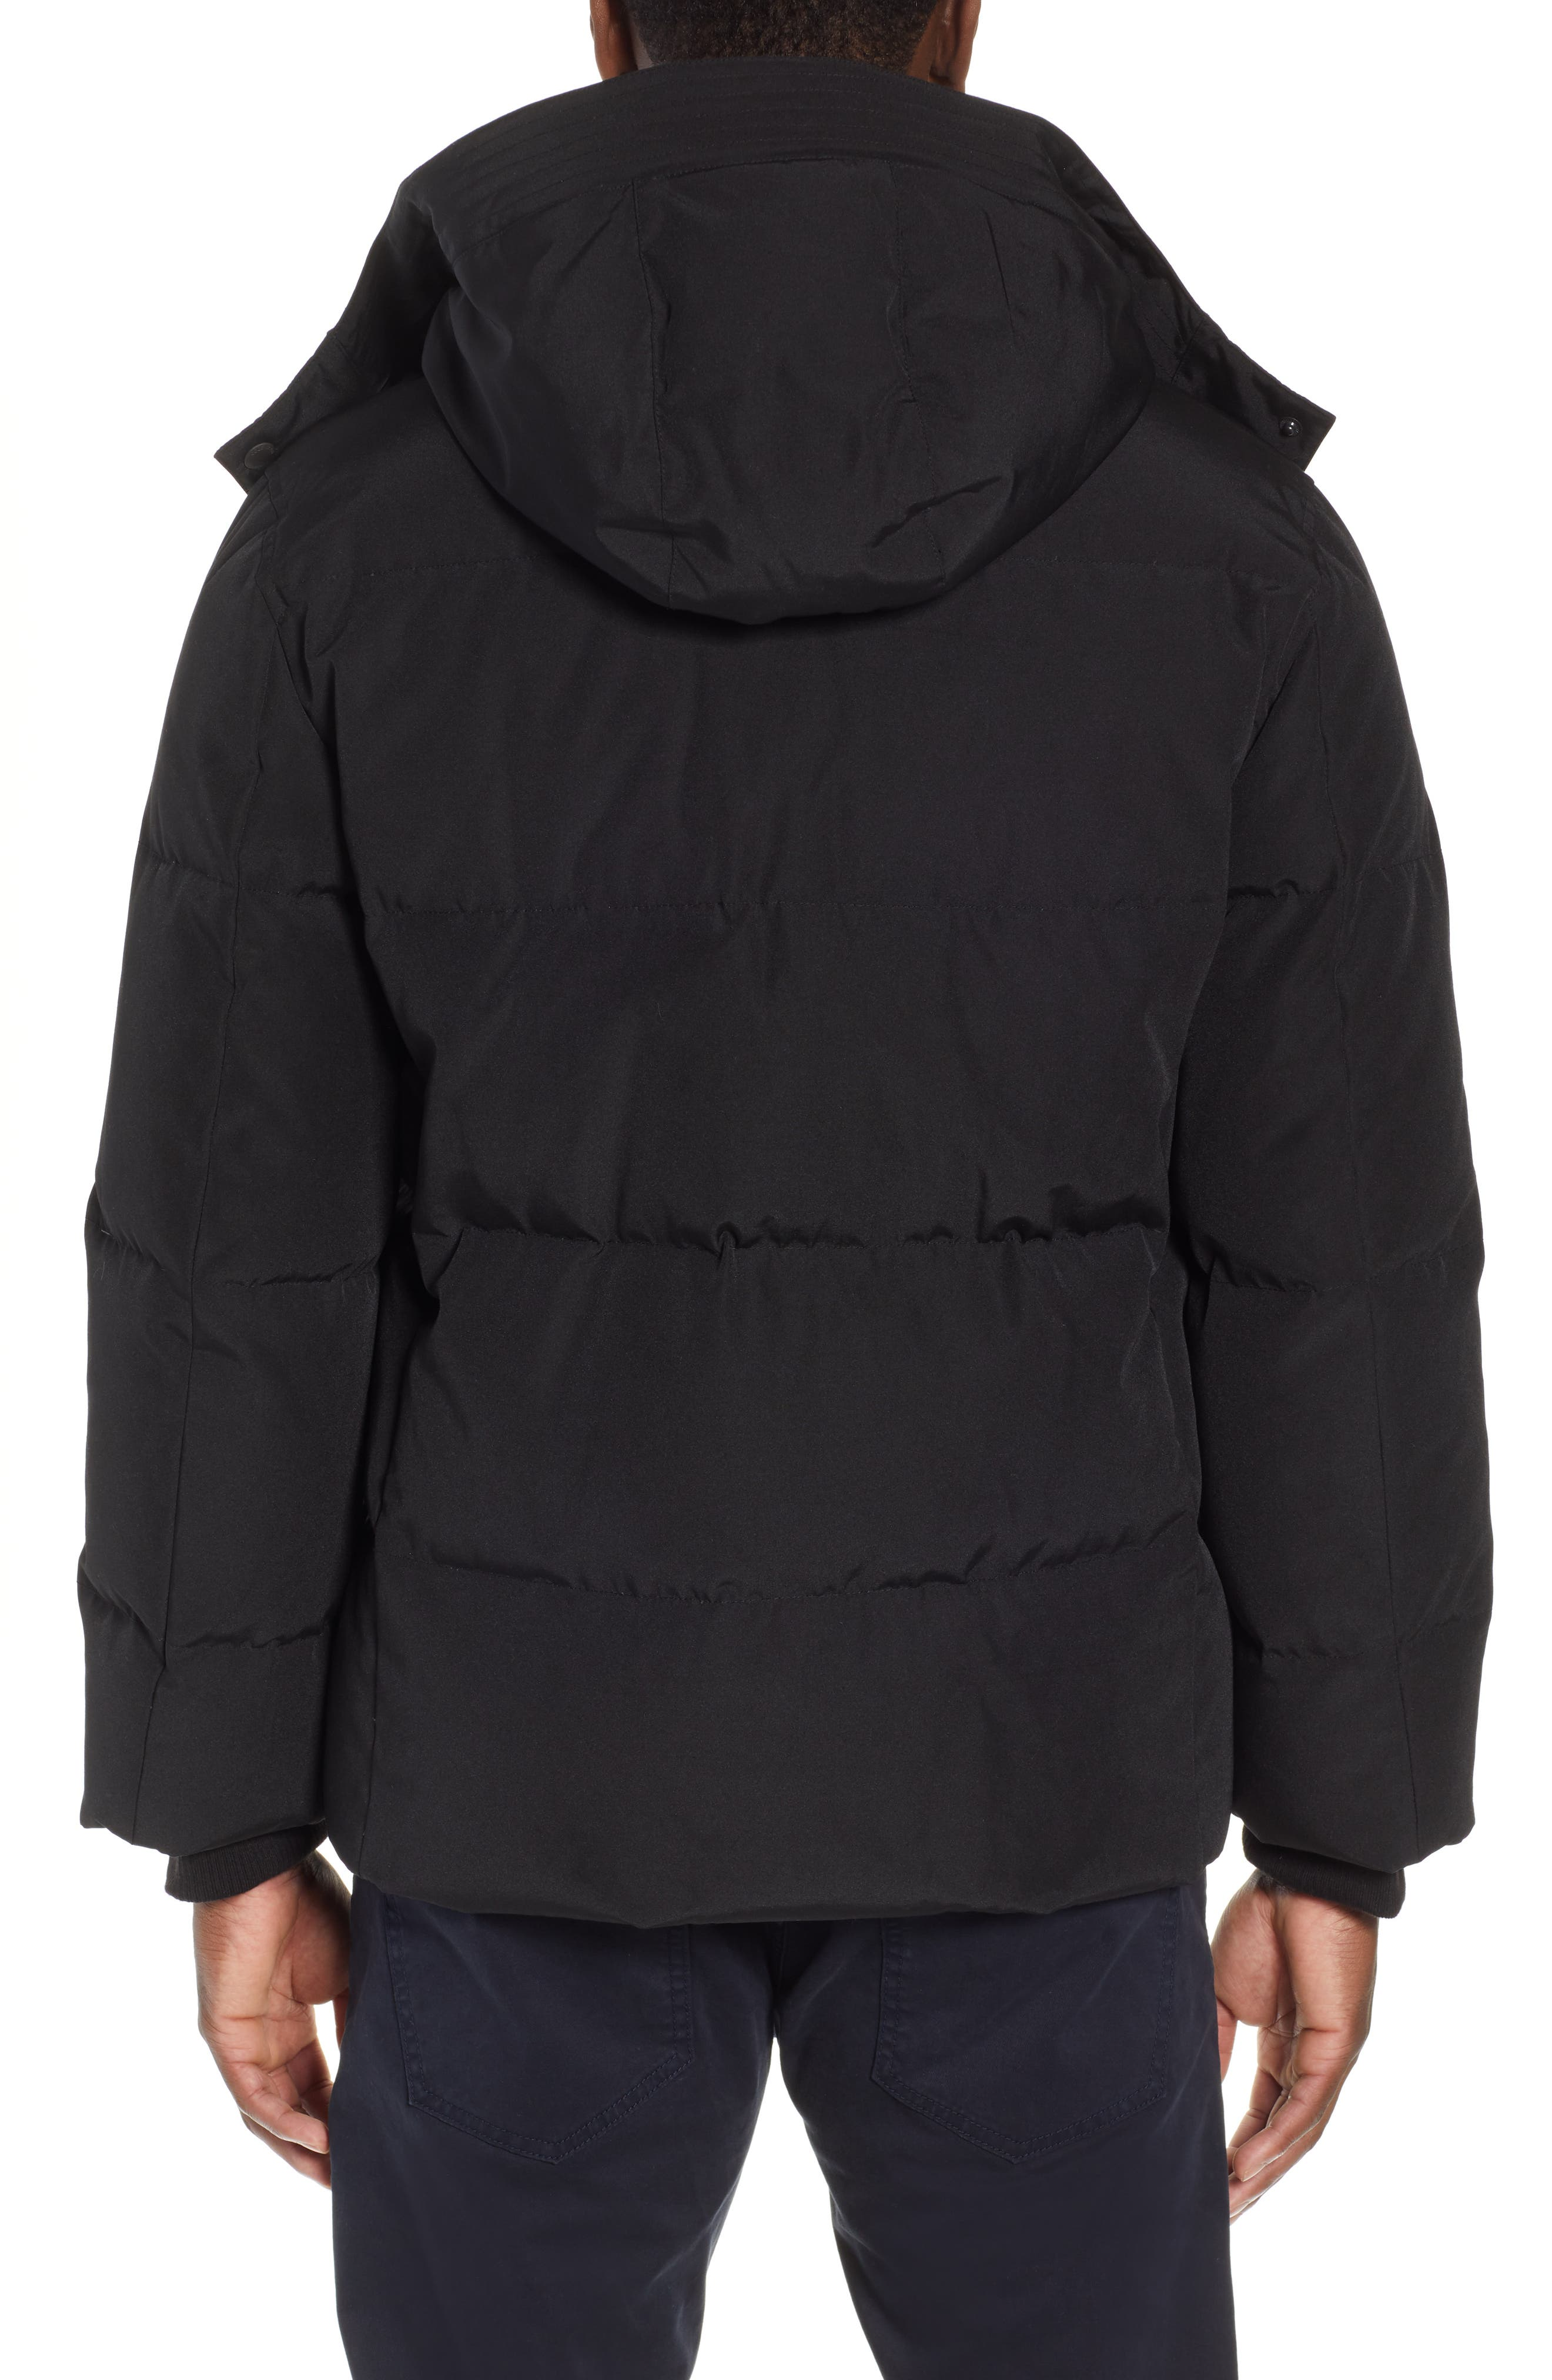 COLE HAAN SIGNATURE, Hooded Puffer Jacket, Alternate thumbnail 2, color, 001